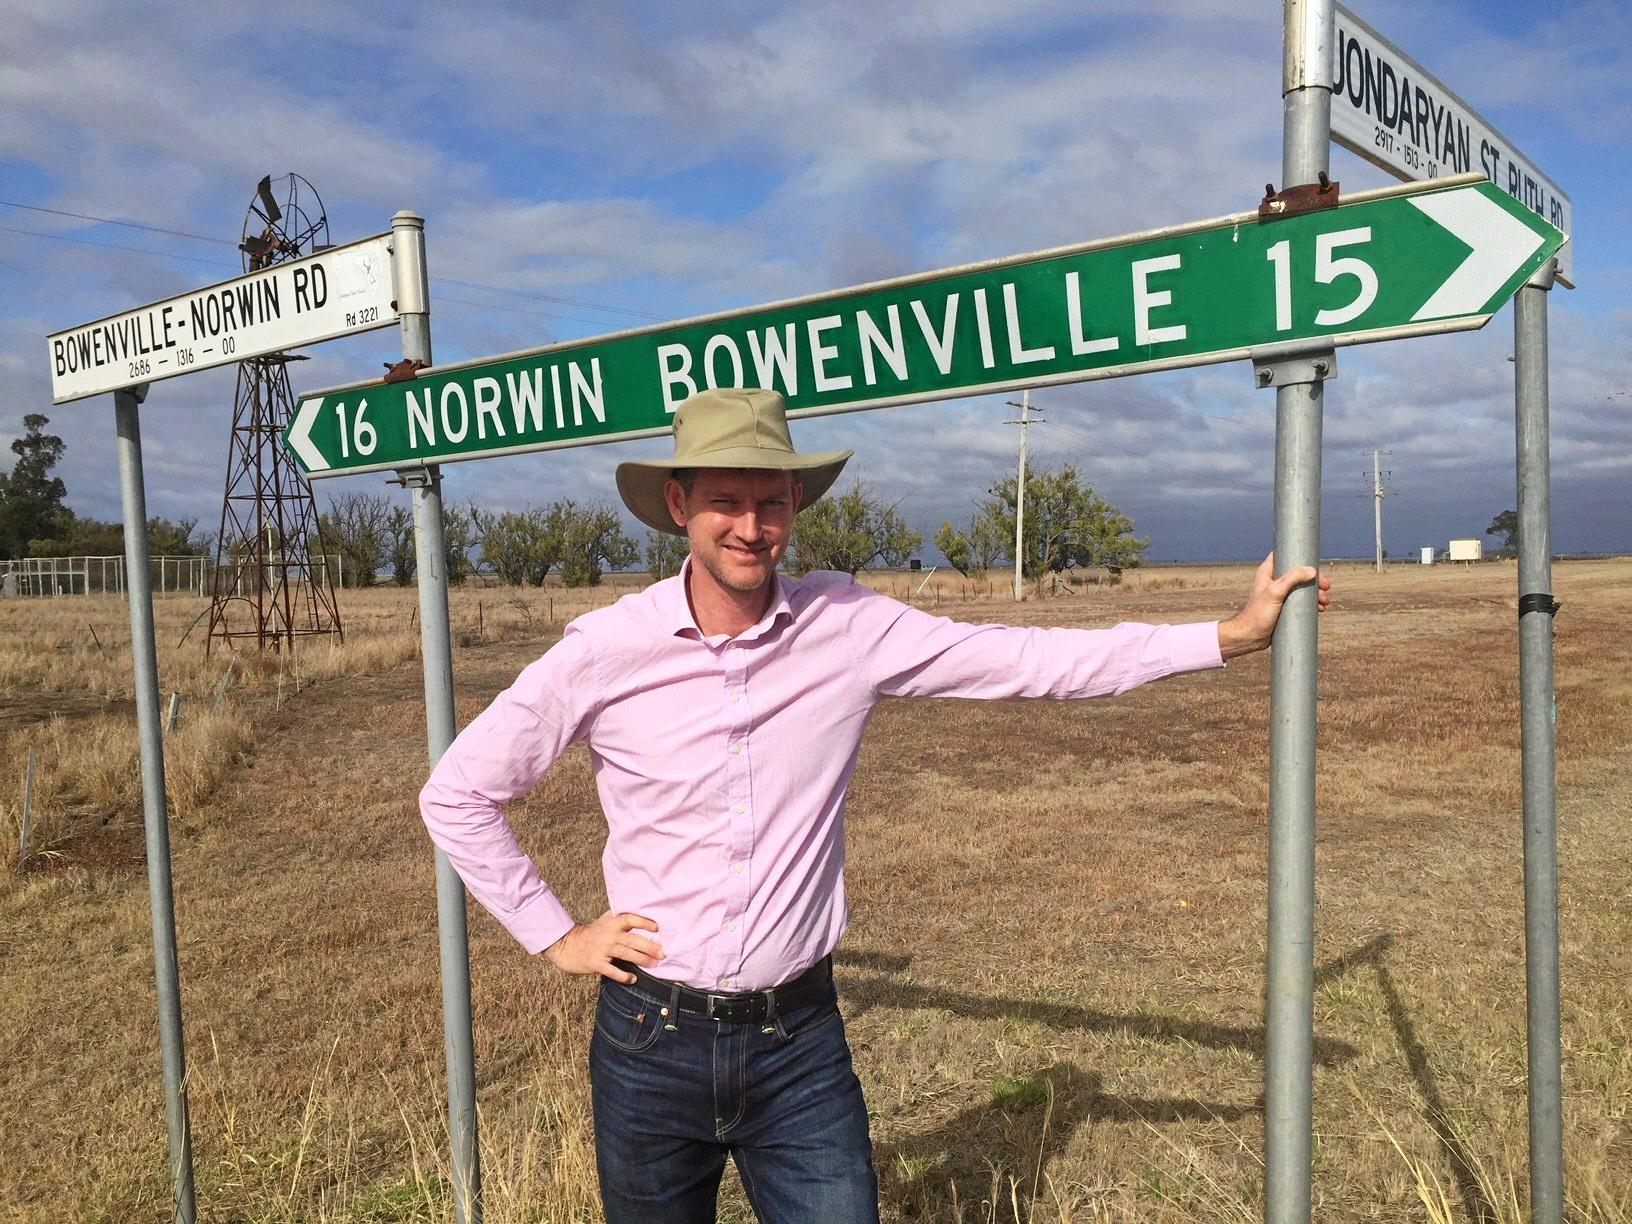 MAJOR UPGRADE: Minister Mark Bailey announced funding to improve Bowenville-Norwin Rd.